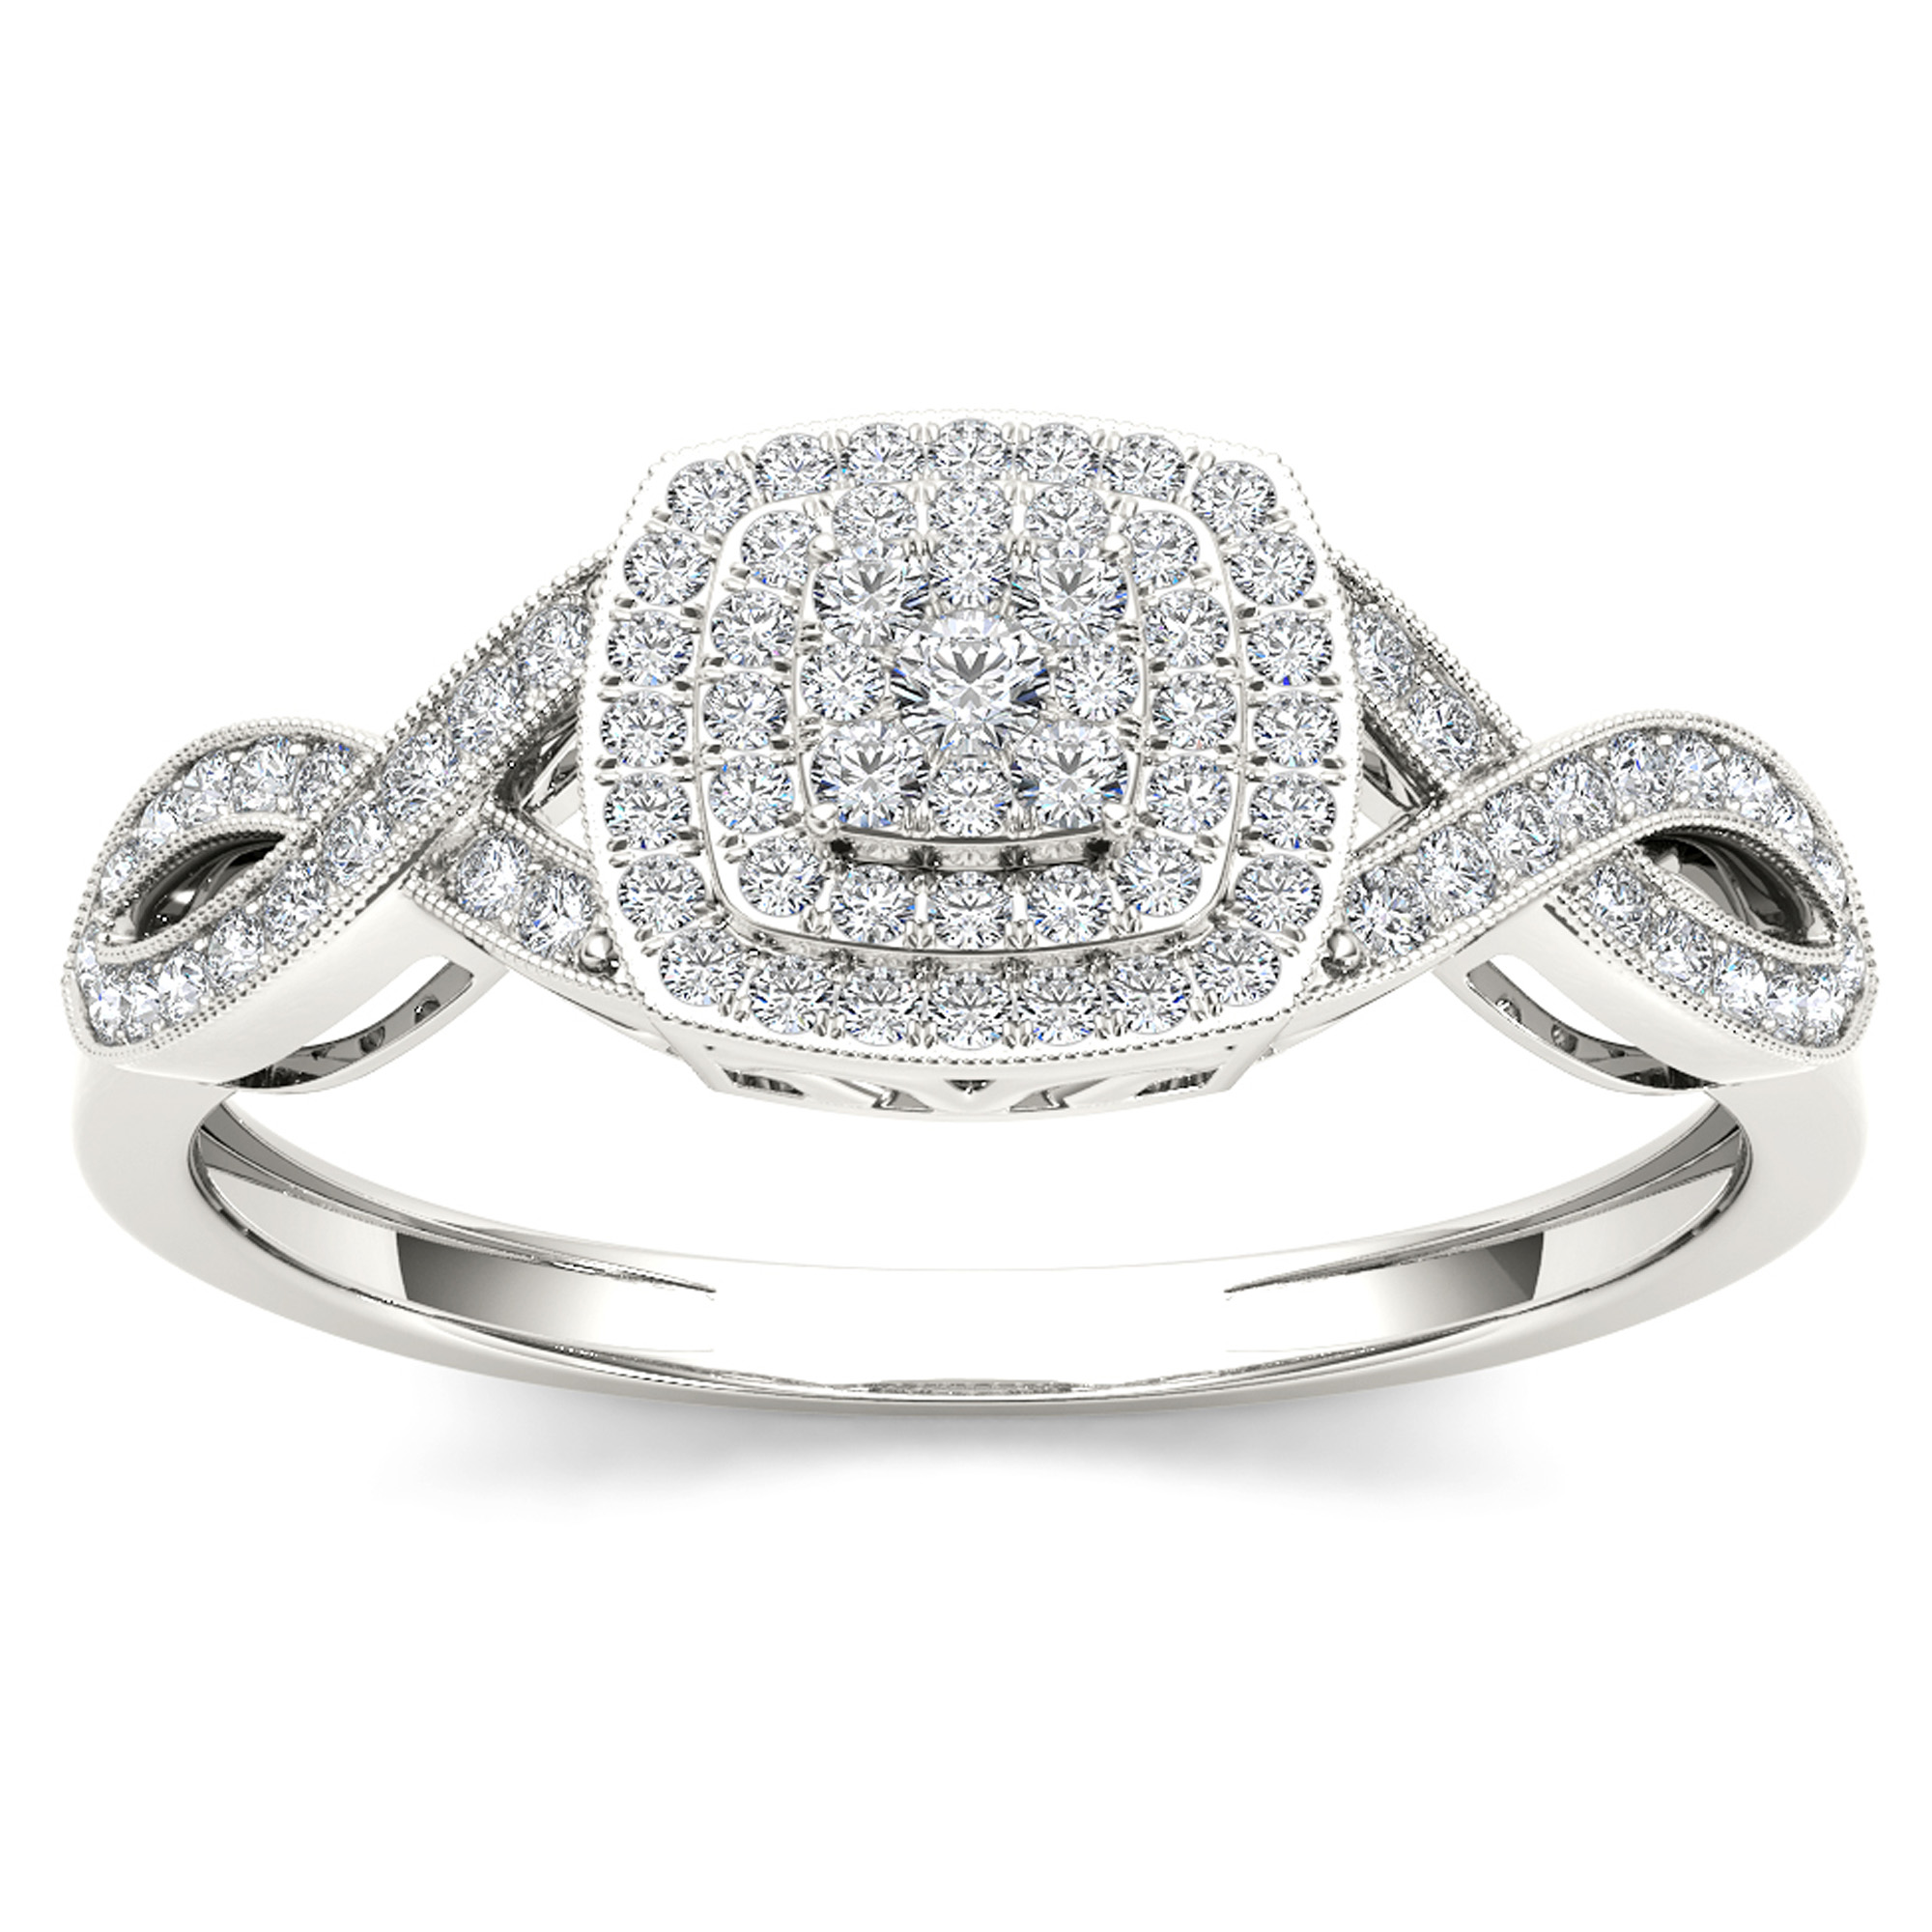 Imperial 1 4Ct TDW Diamond 10K White Gold Criss-Cross Engagement Ring by DE COUER NEW YORK LLC